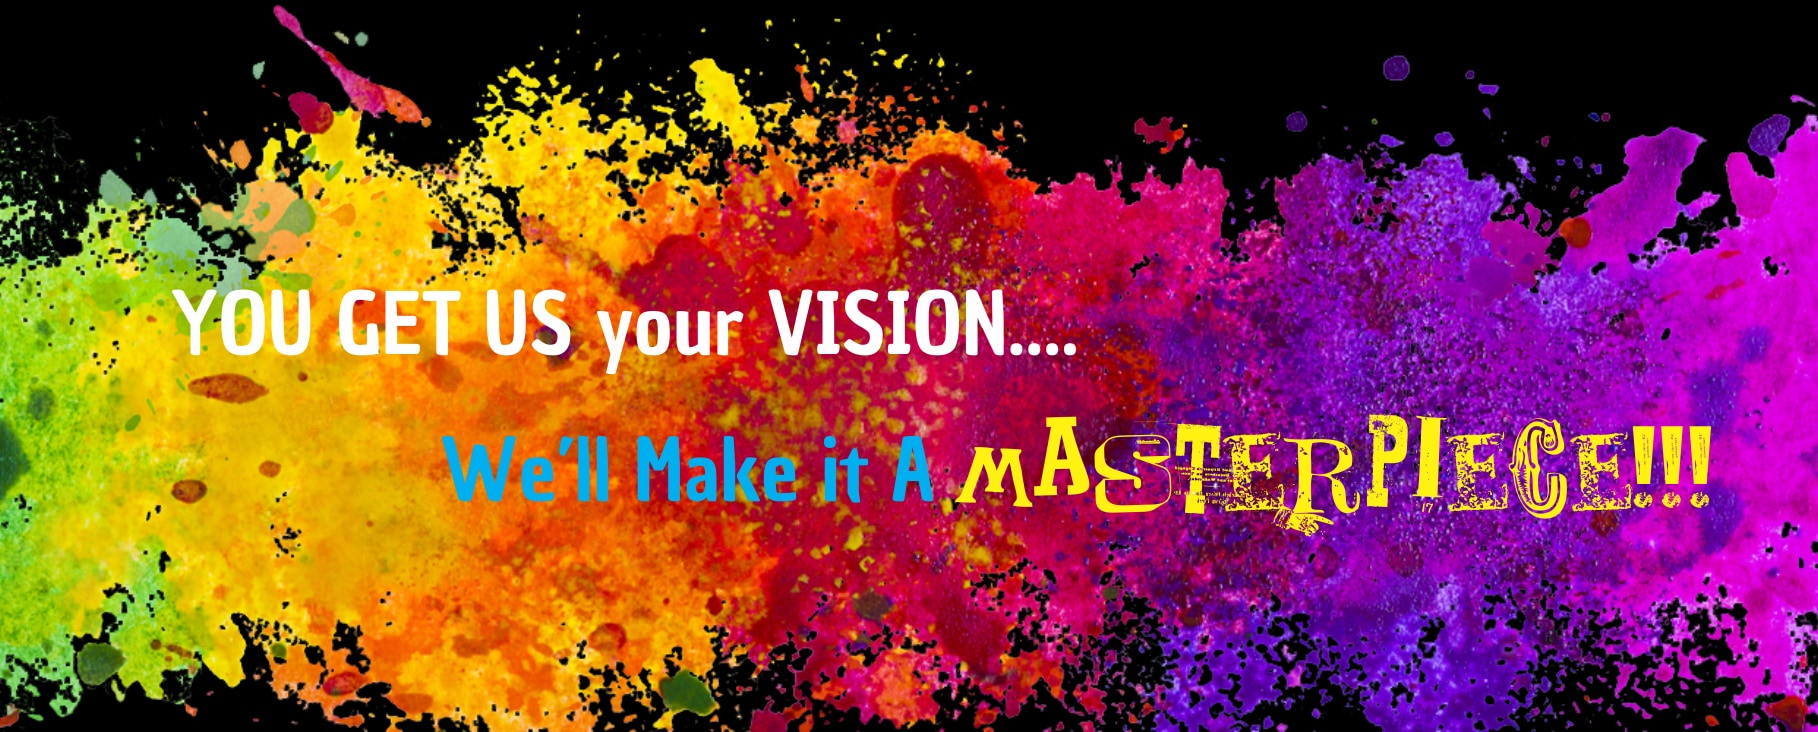 Vava Arts - Printing Services and Printing Agency in Nalasopara East, Palghar